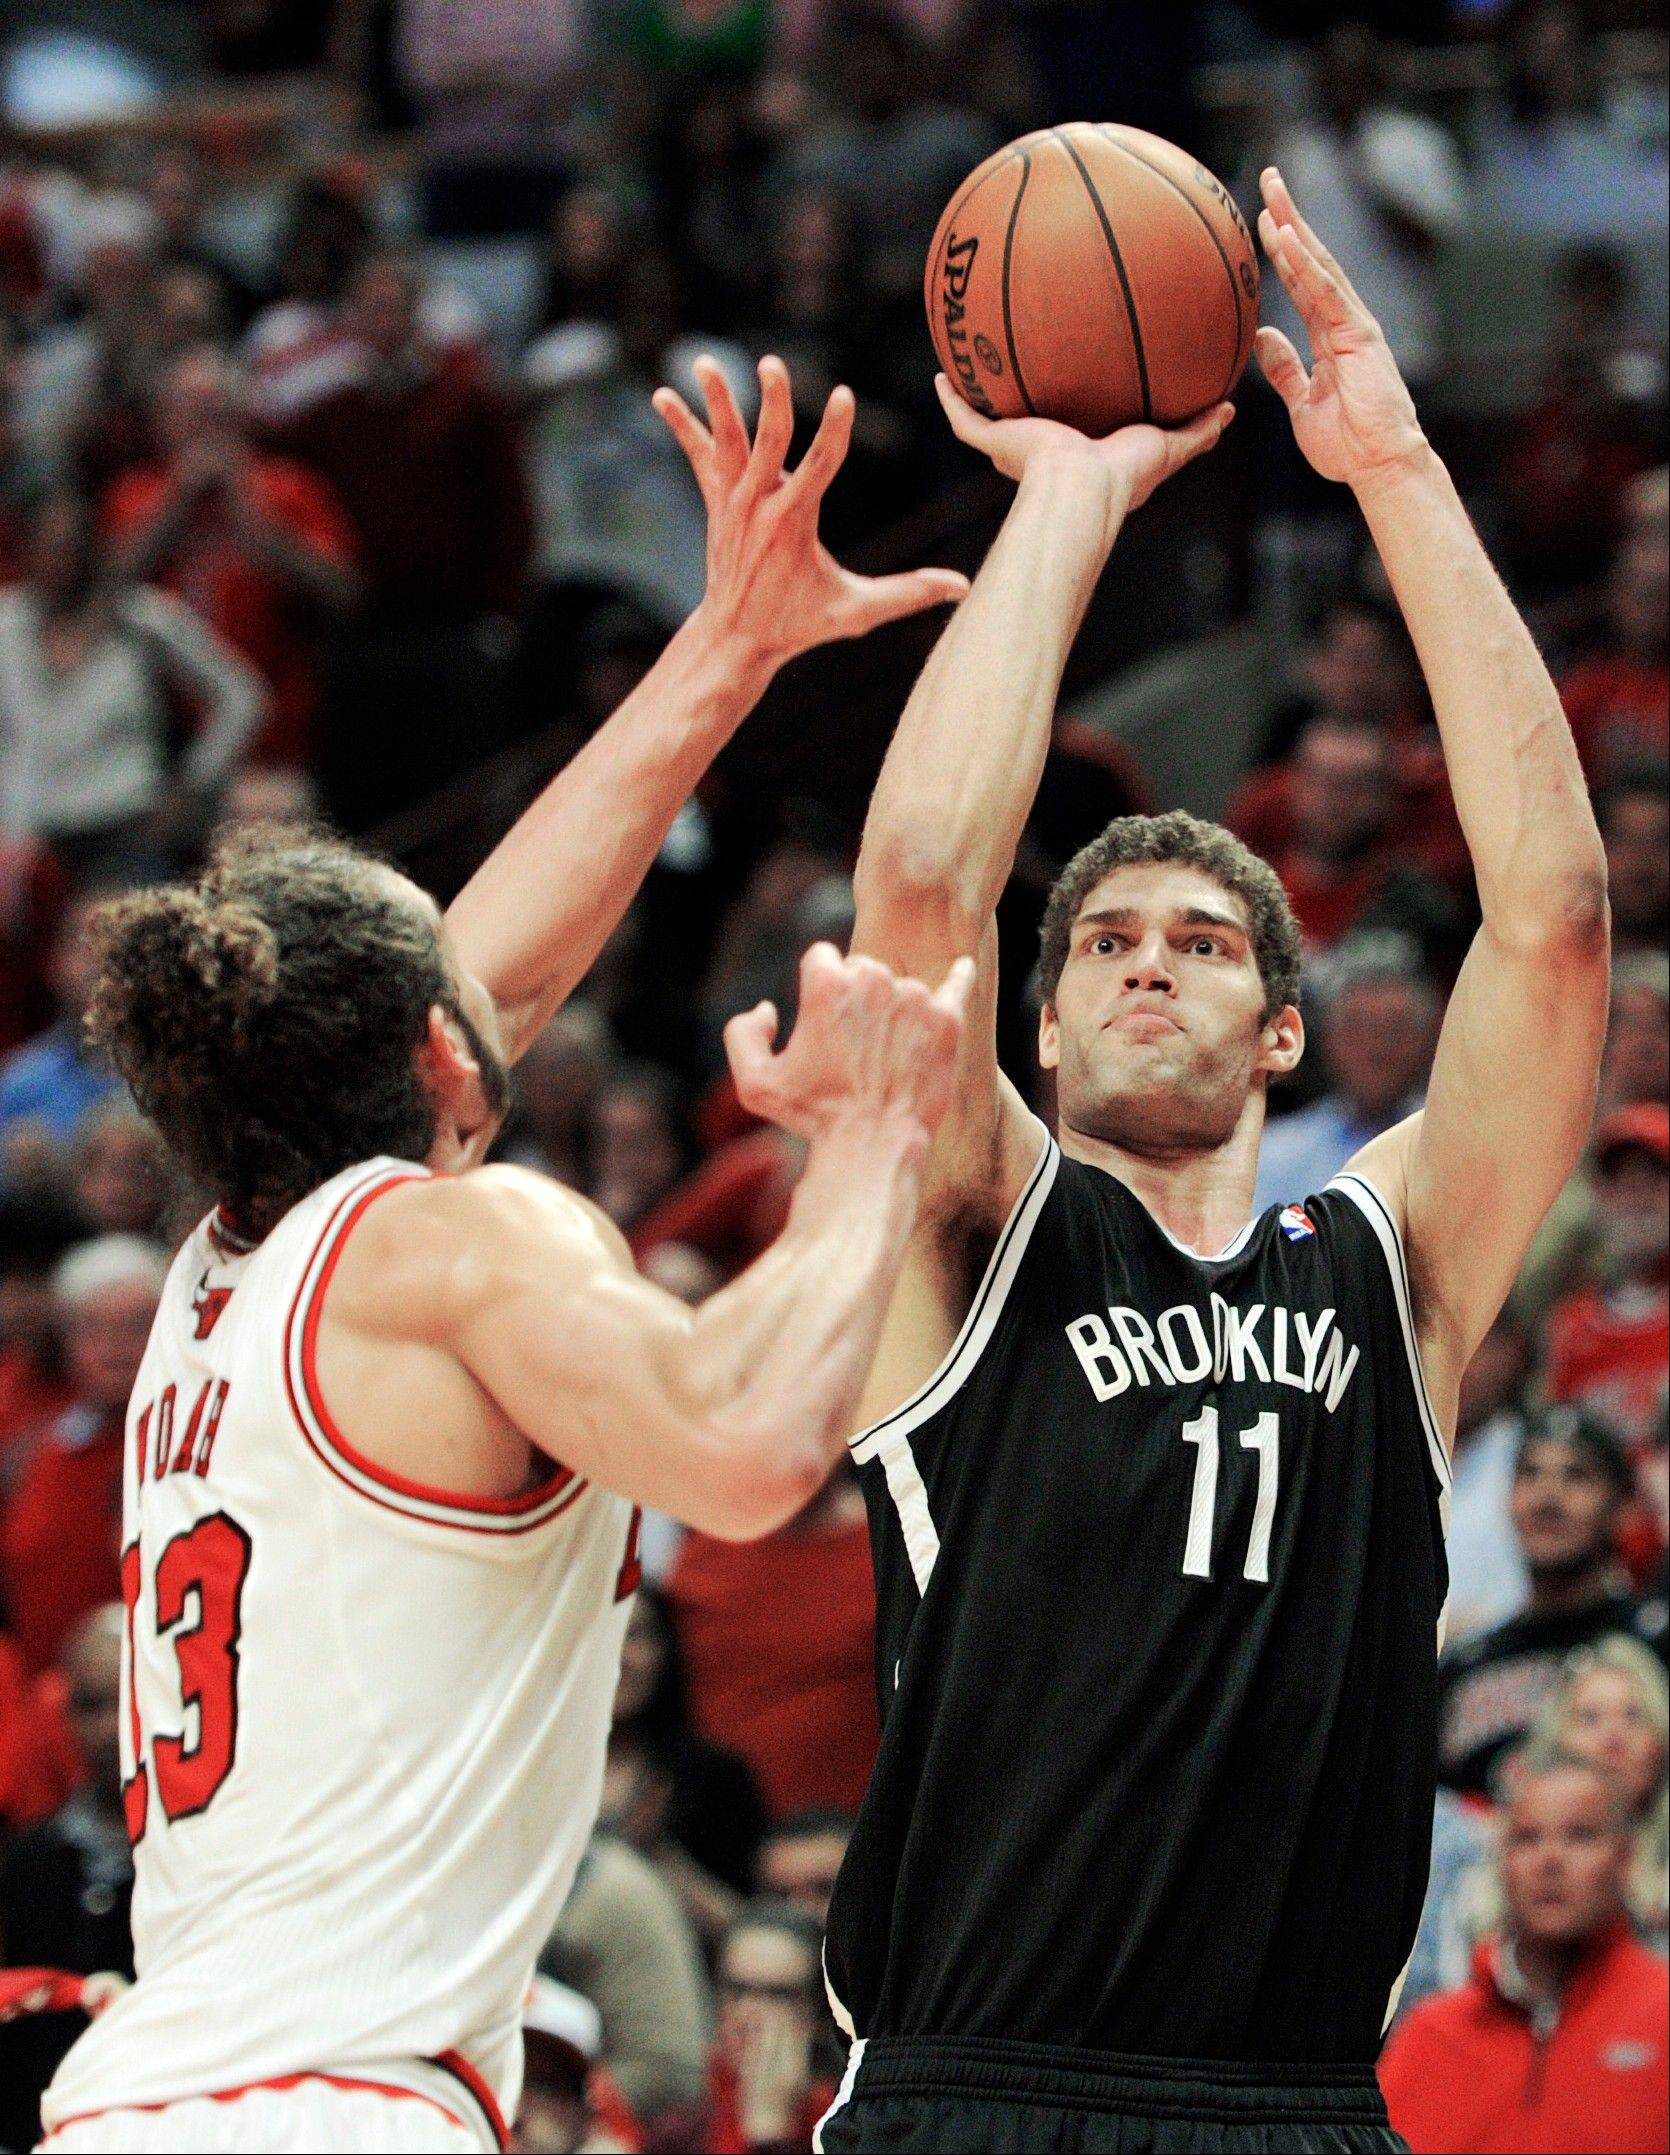 Chicago Bulls' Joakim Noah, left, tries to block the shot of Brooklyn Nets' Brook Lopez (11) during the second overtime in Game 4 of their first-round NBA basketball playoff series Saturday, April 27, 2013, in Chicago. The Bulls won 142-134 in three overtimes.